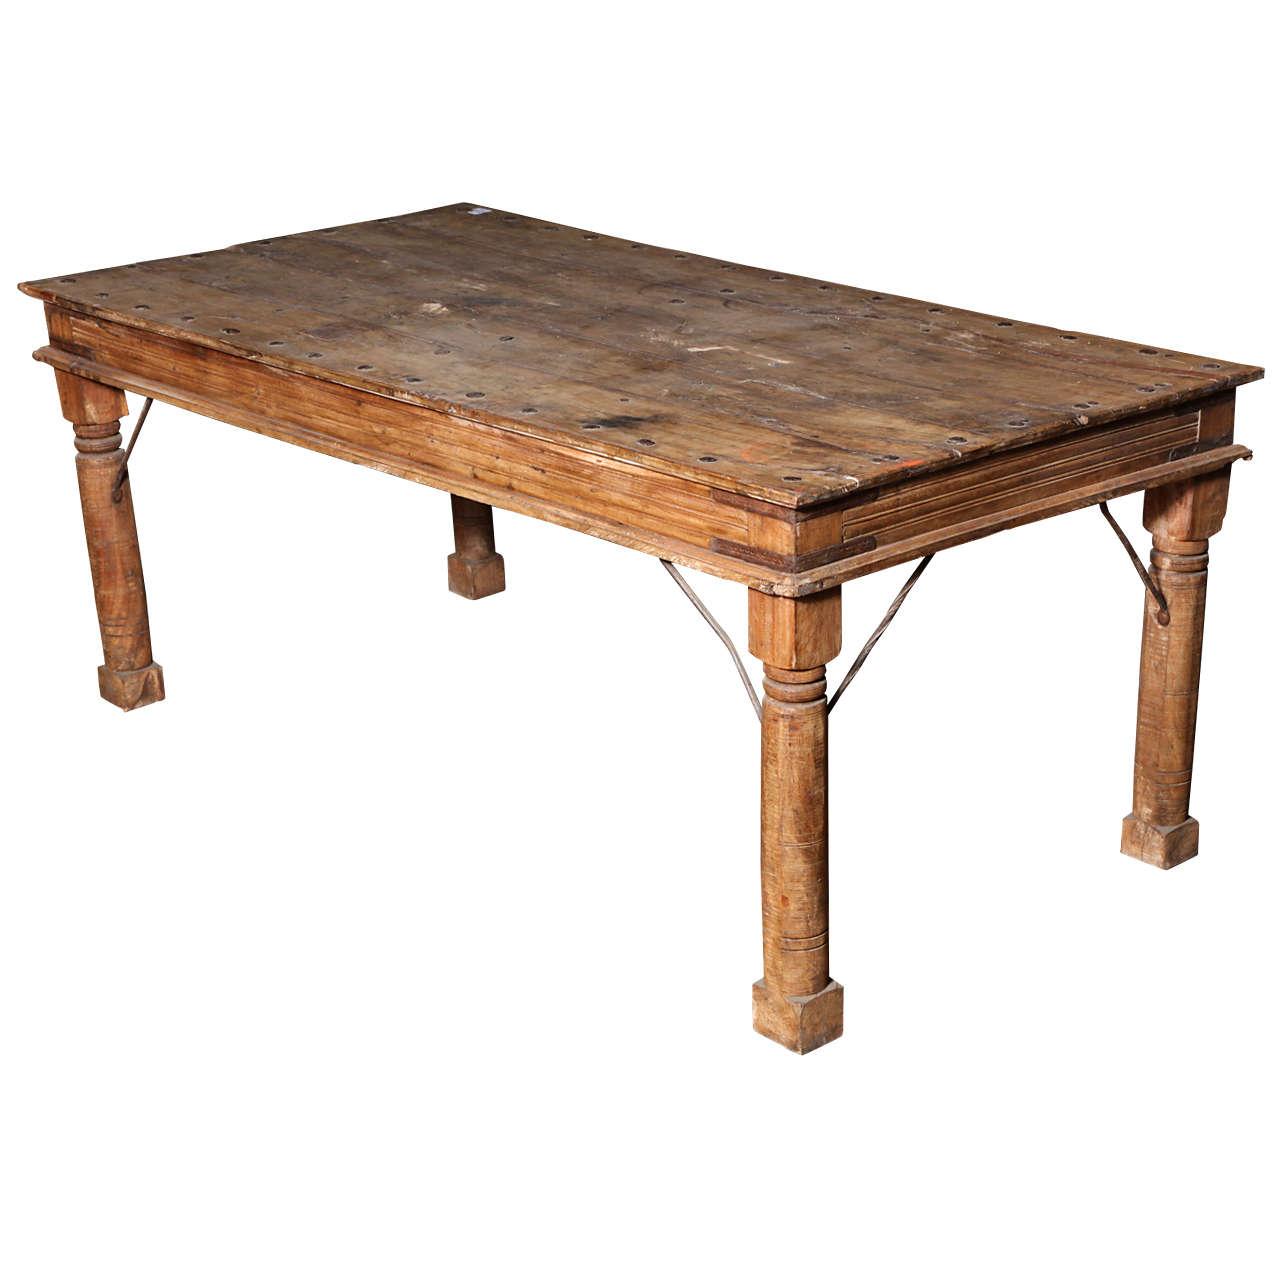 Indian Shesham Wood Bed Or Dining Table For Sale At 1stdibs